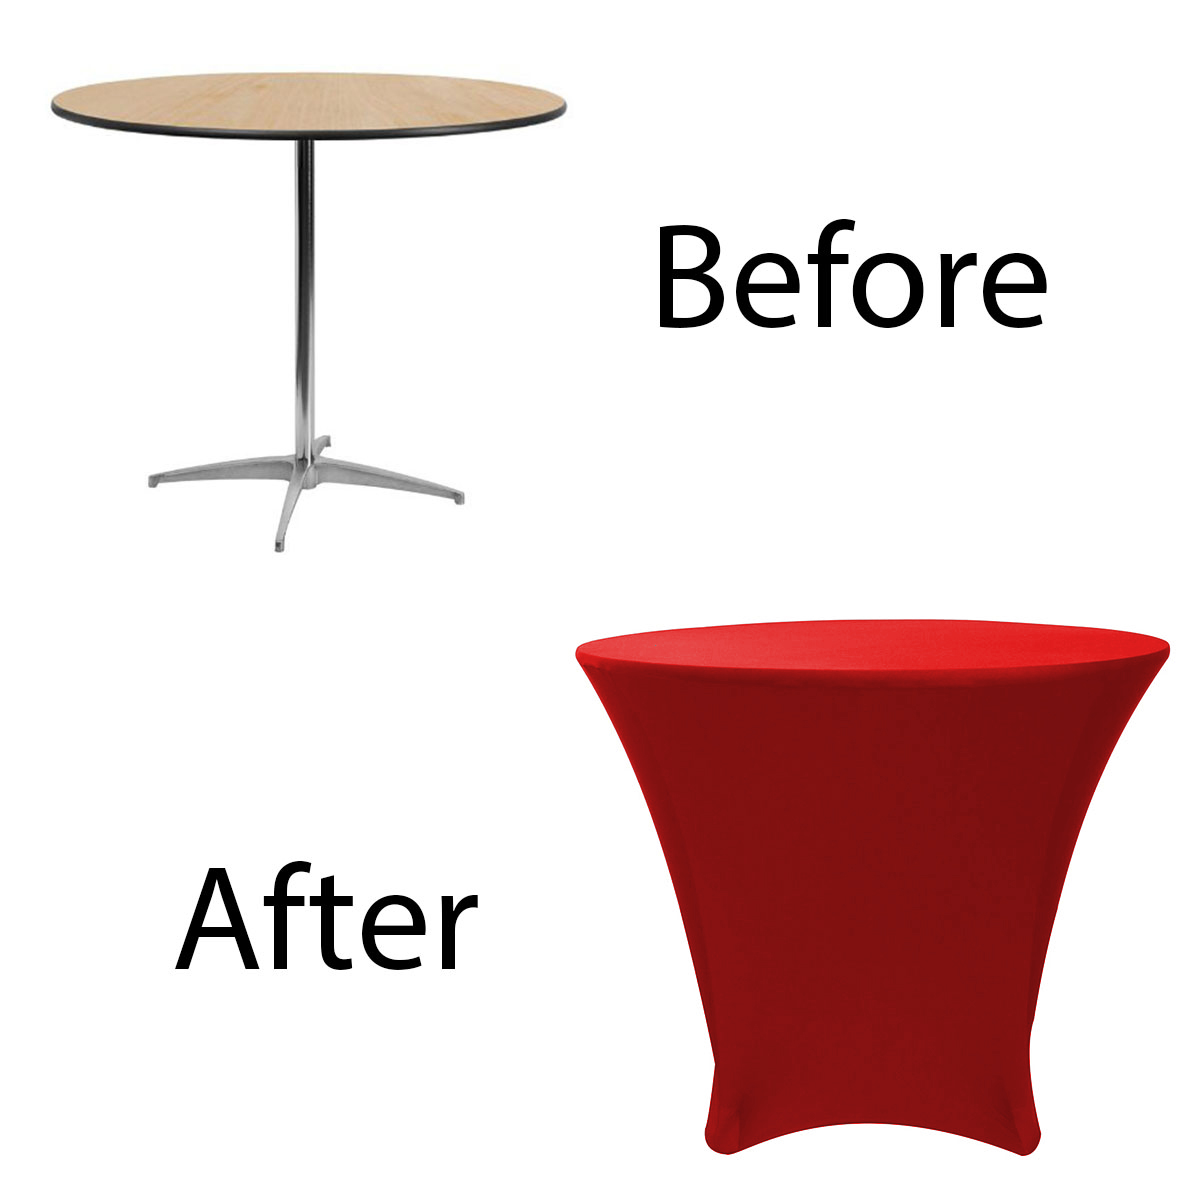 36-30-inch-lowboy-cocktail-spandex-table-covers-red-before-after.jpg